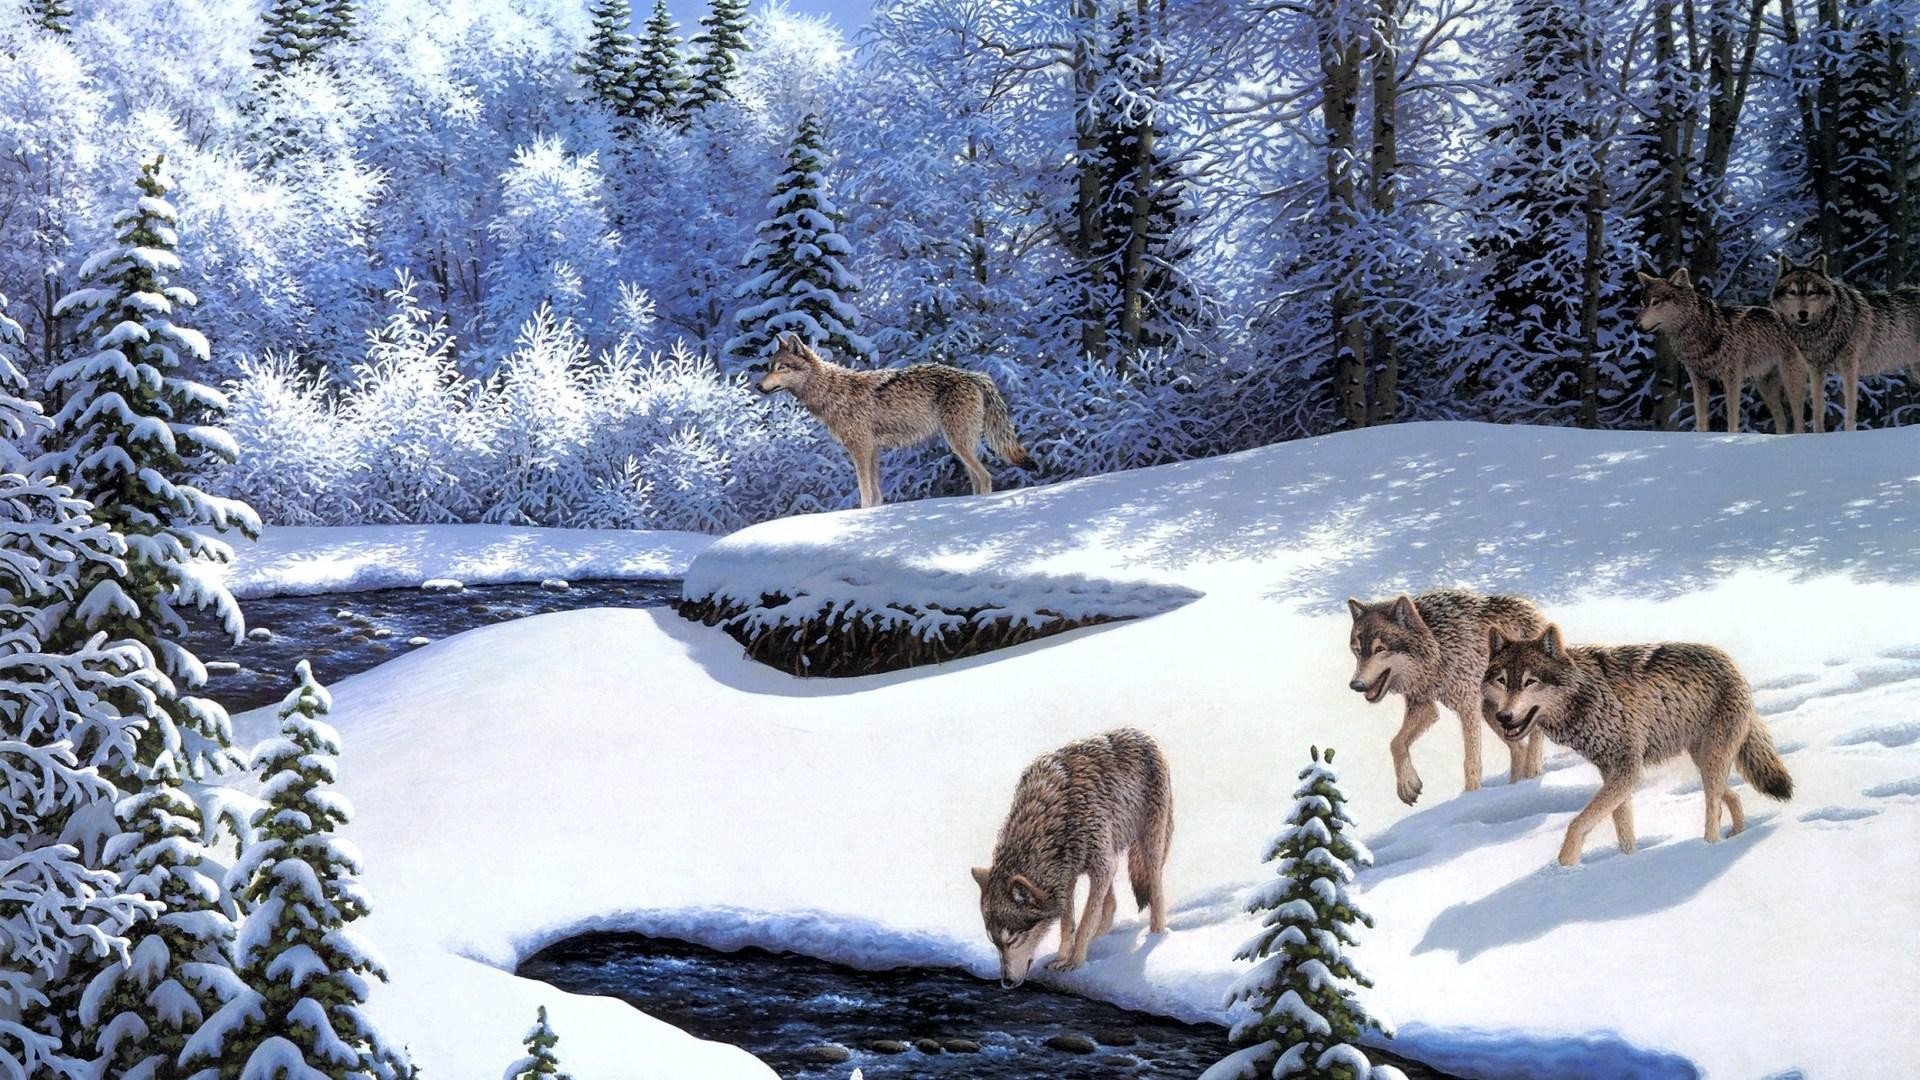 Winter Wolves Wallpaper – HD Wallpapers Backgrounds of Your Choice